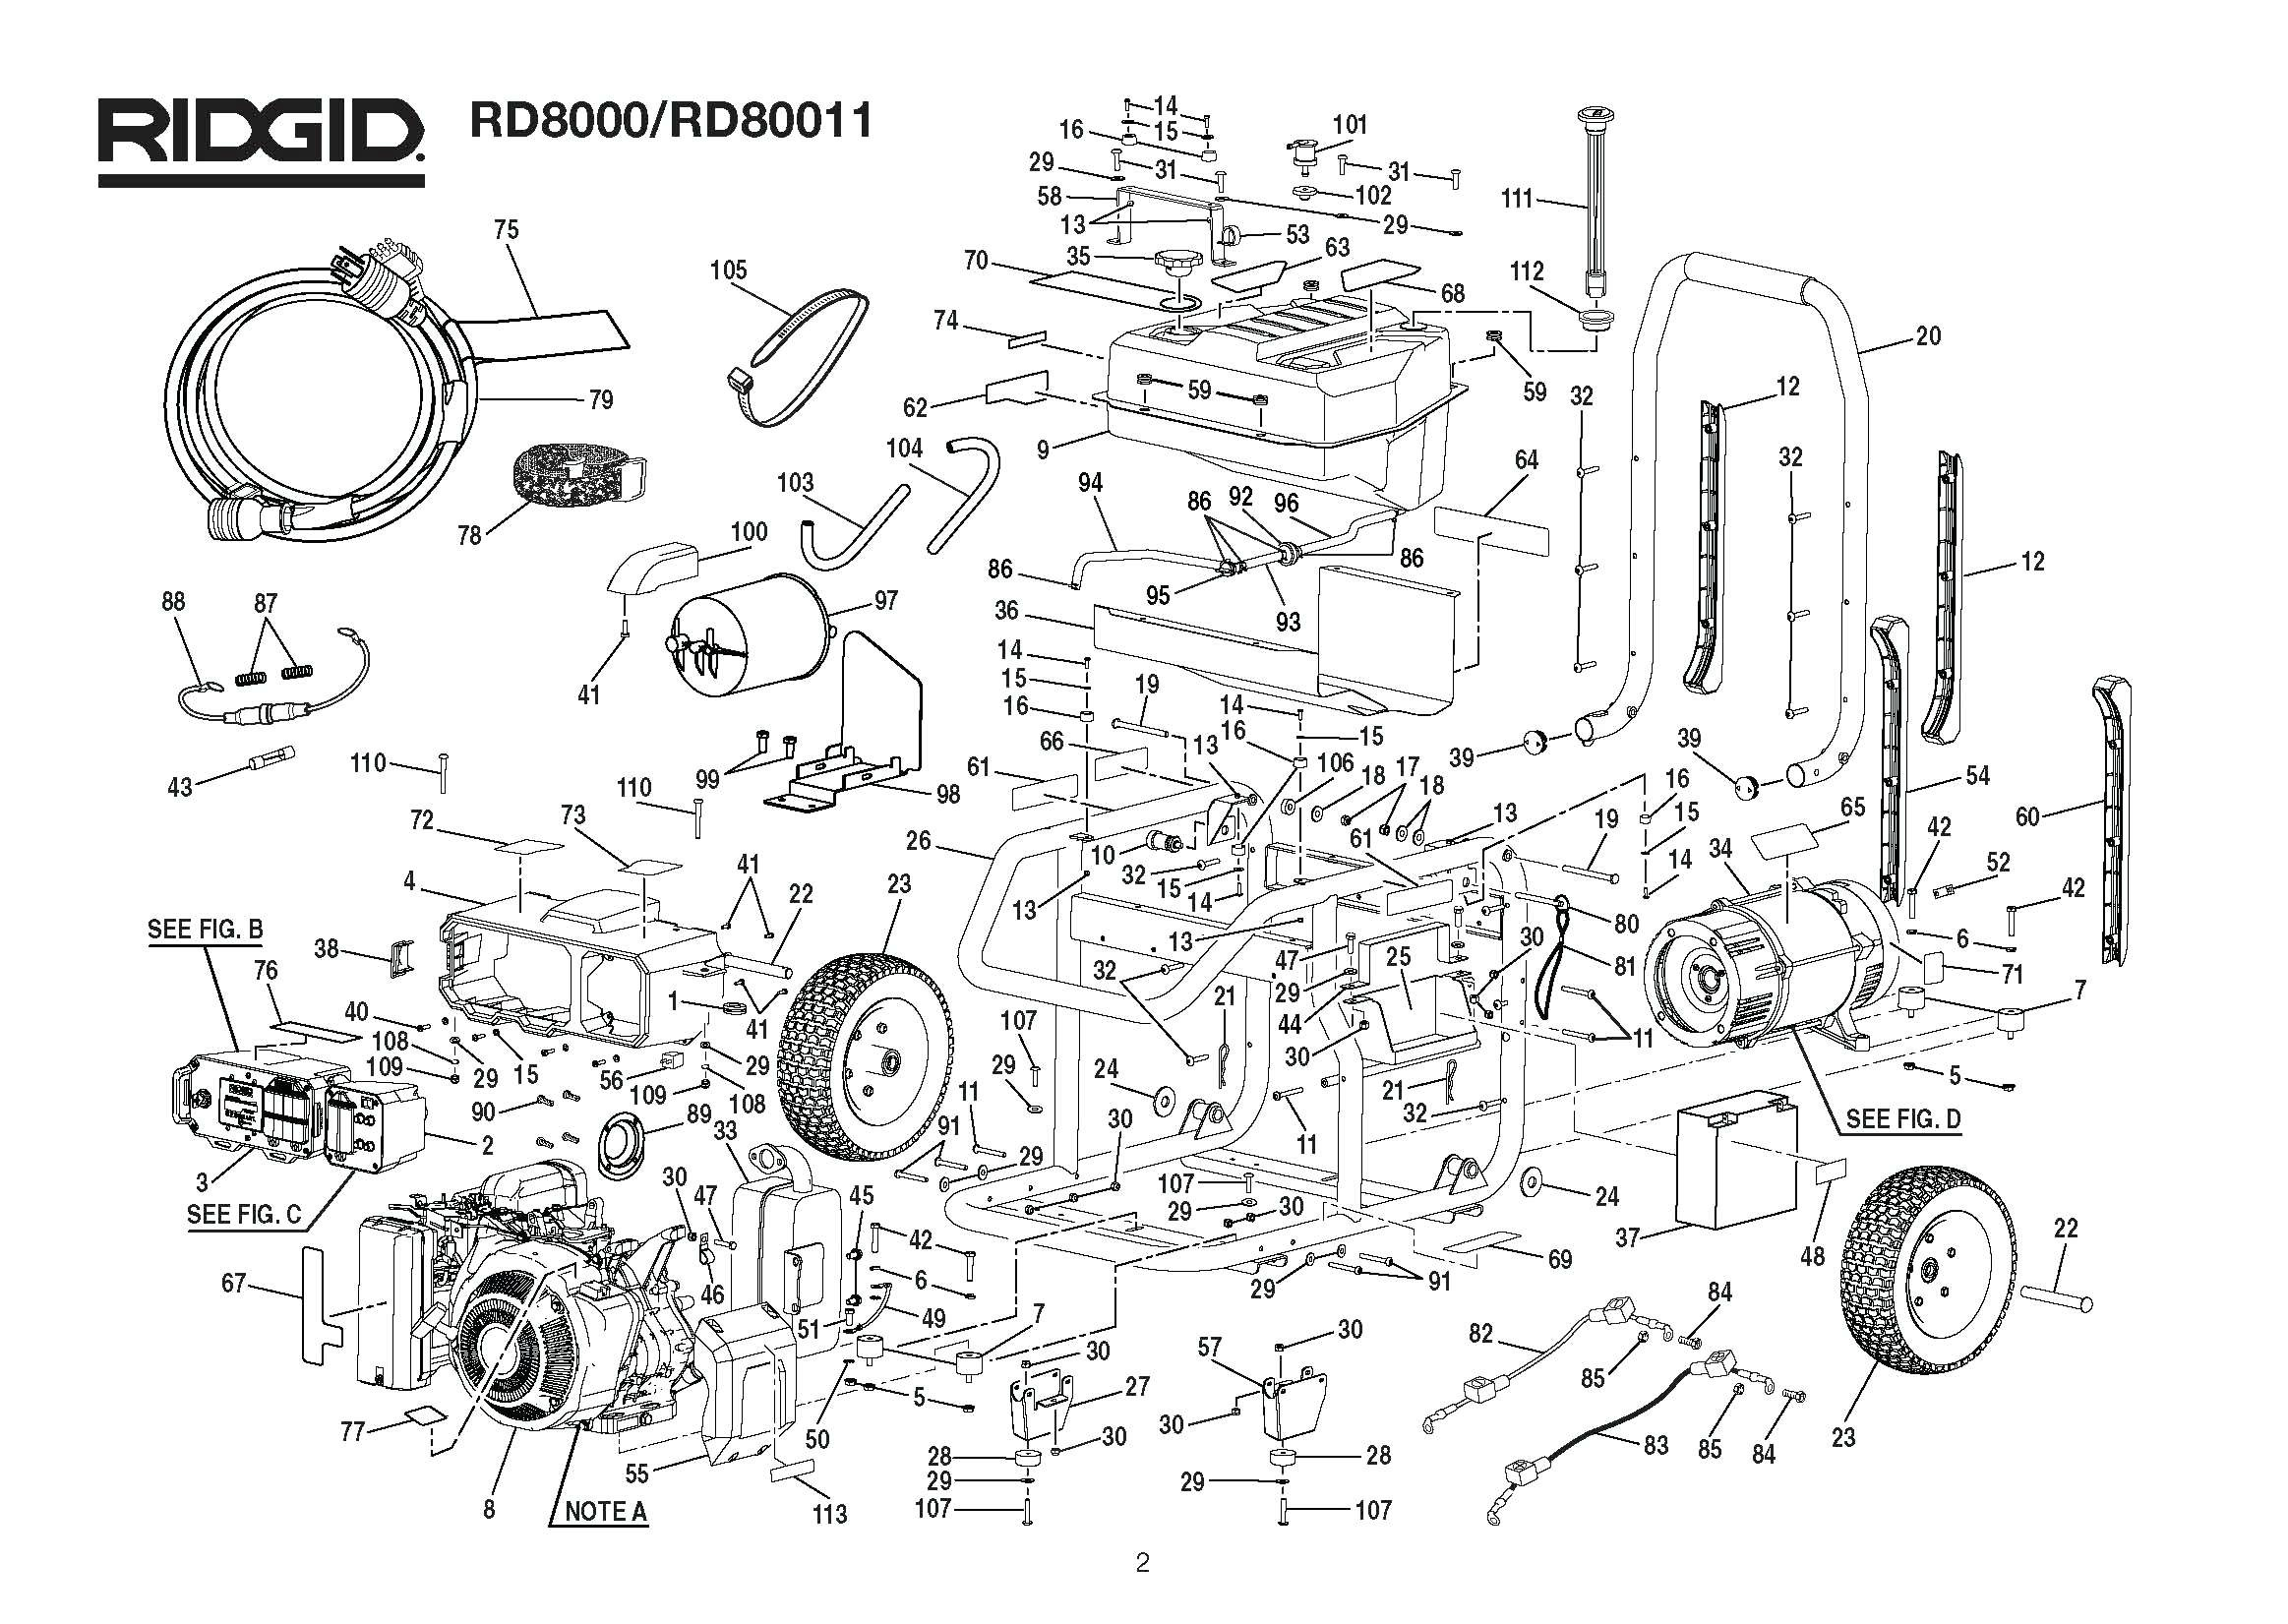 Subaru Outback Engine Diagram Another Blog About Wiring Generator 1997 Residential 2003 2001